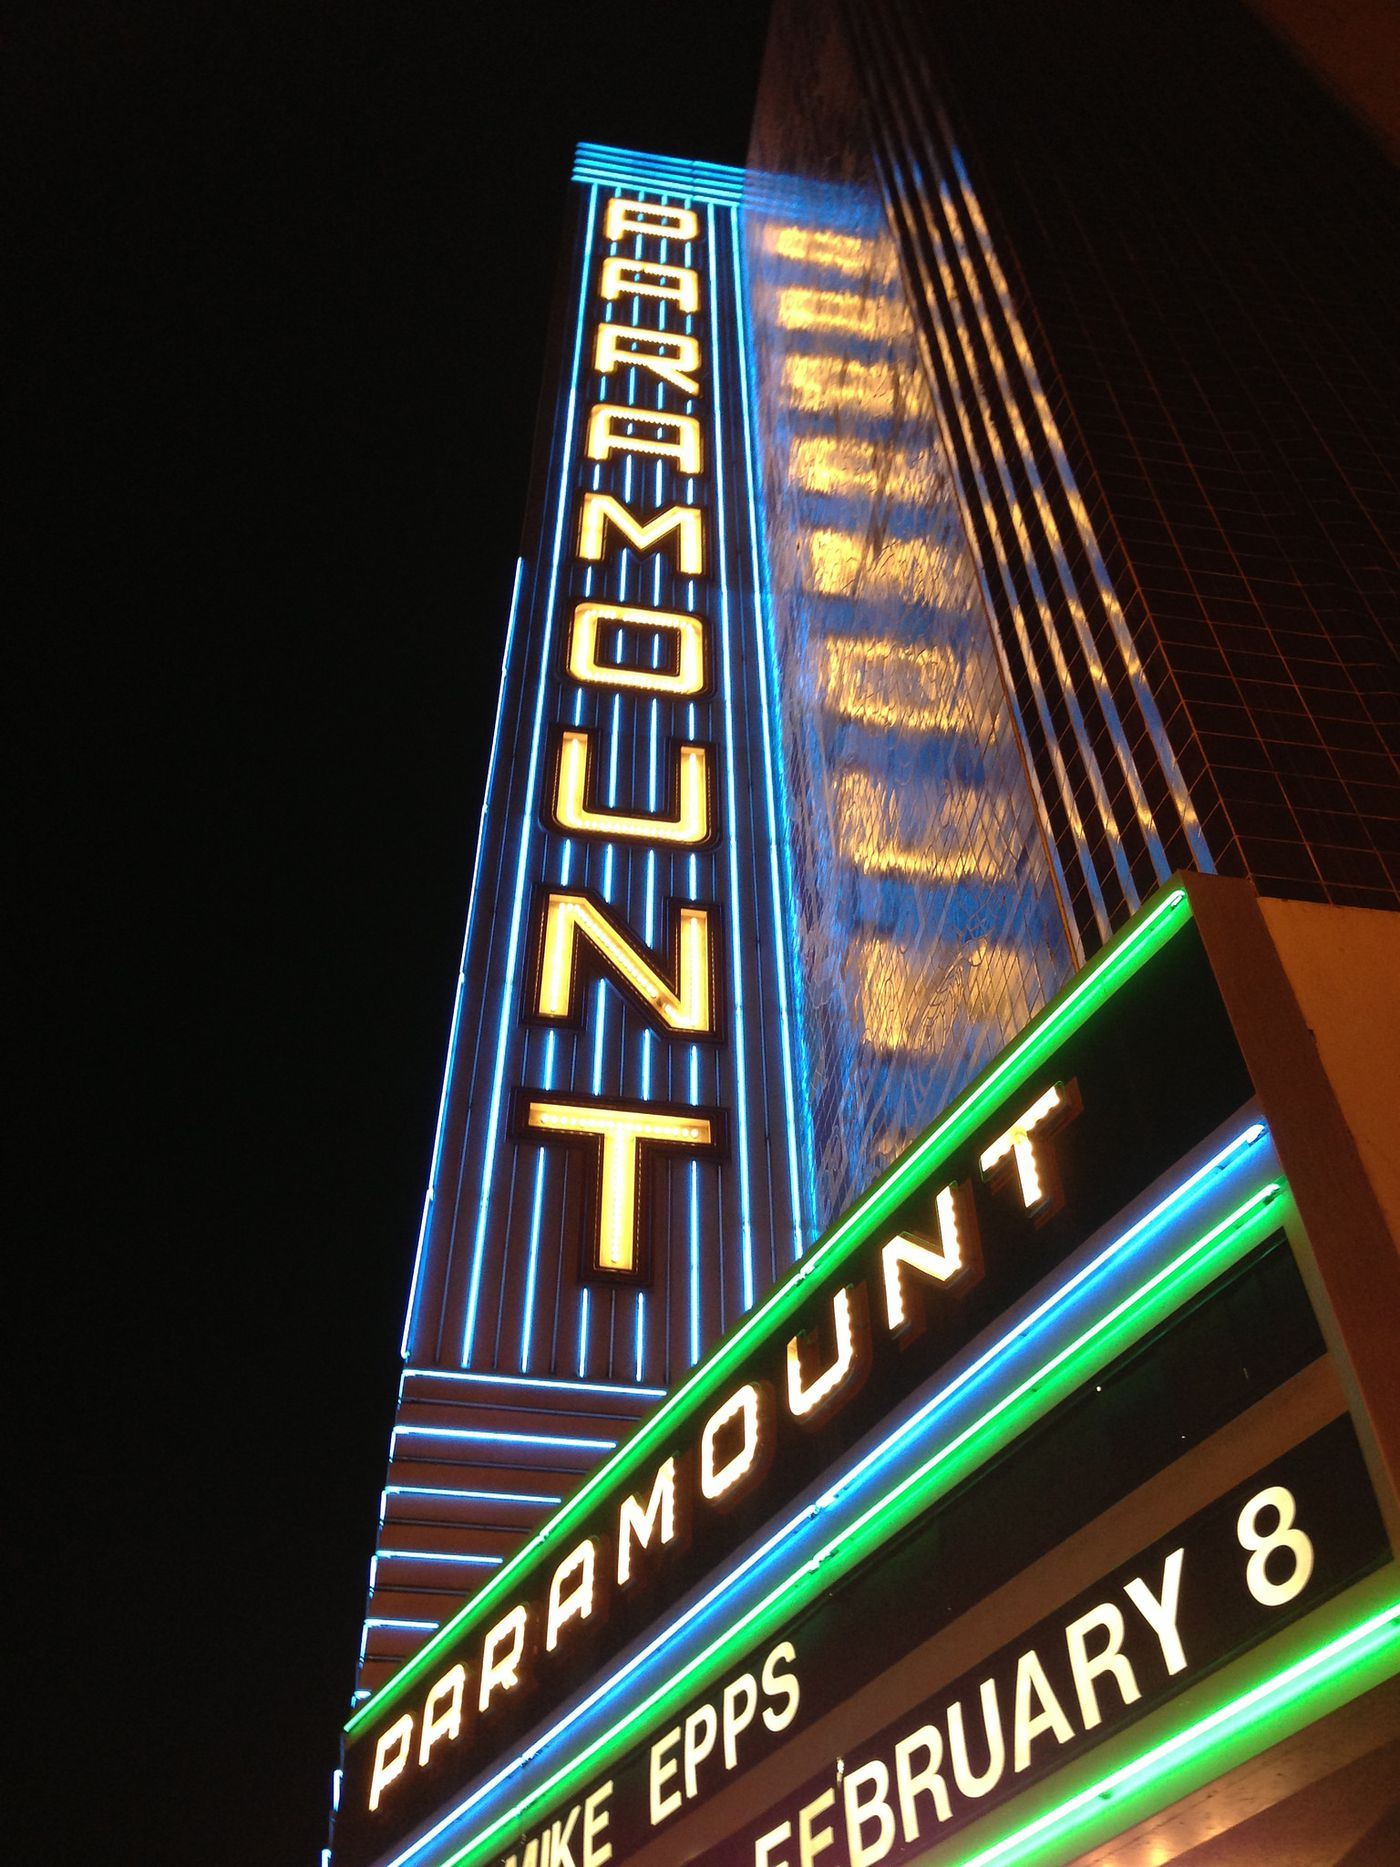 Neon dreams: 16 old movie theater marquees around the Bay Area